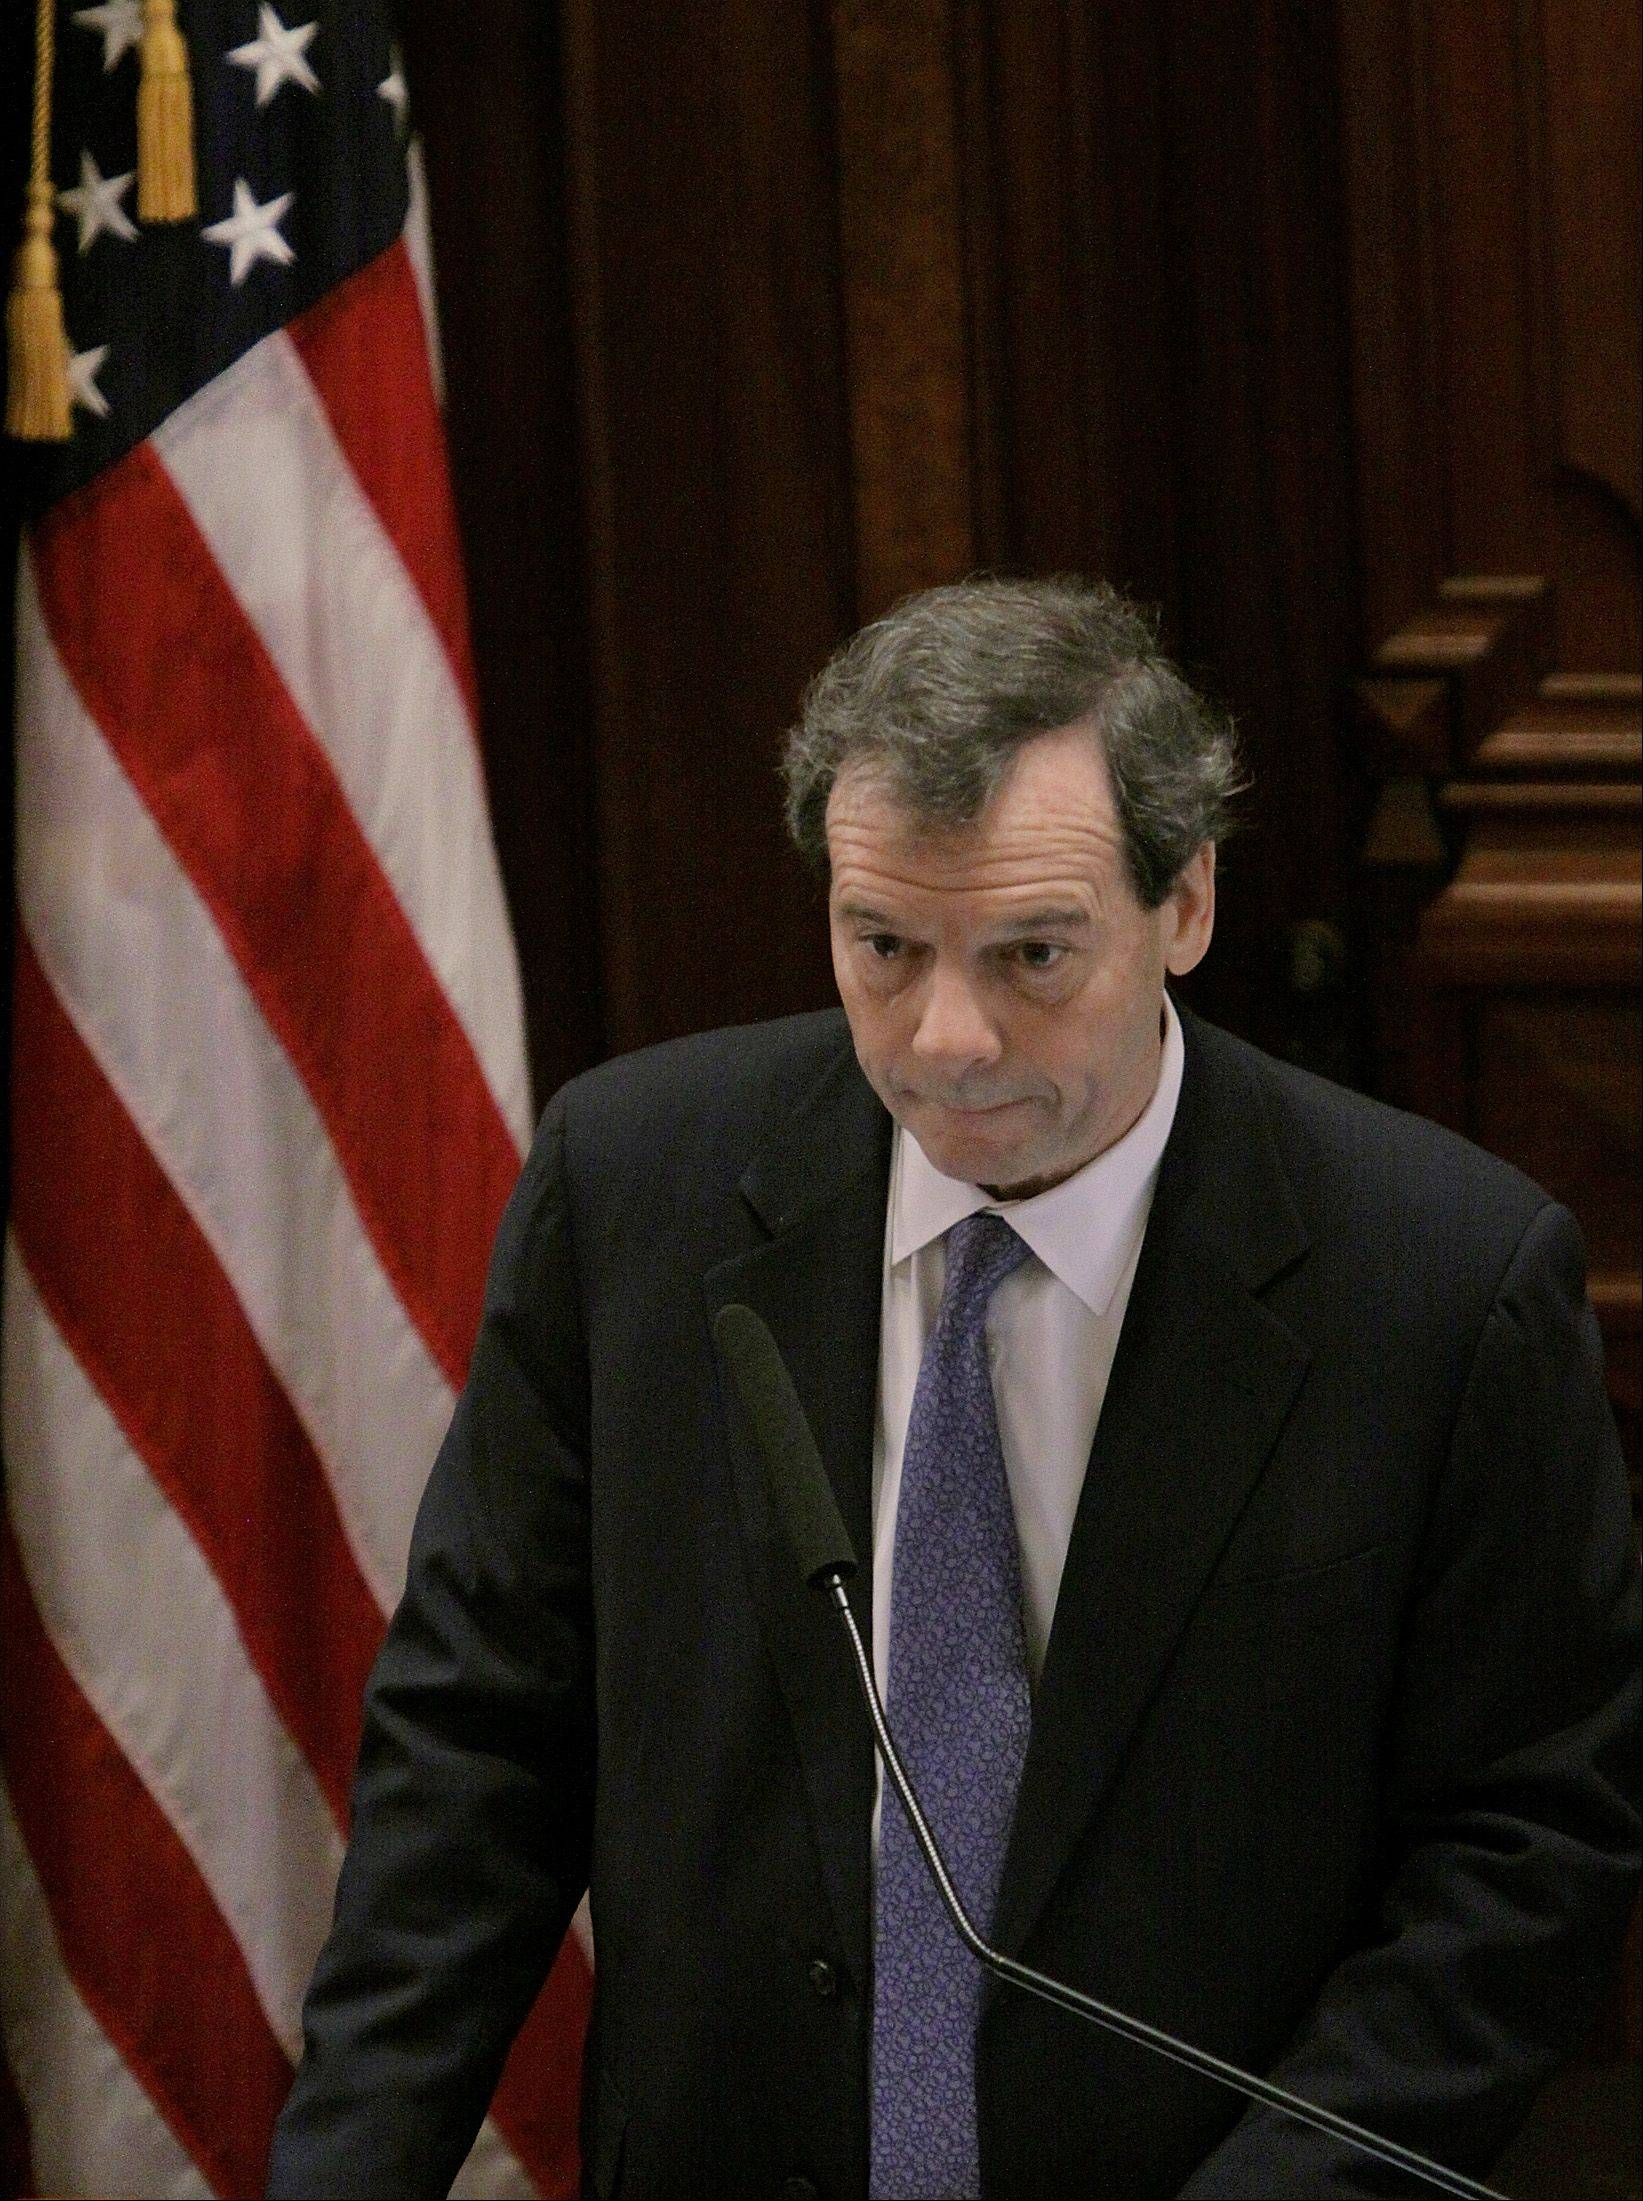 Illinois Senate President John Cullerton's union-backed pension-cutting plan was approved by a Senate committee Wednesday.